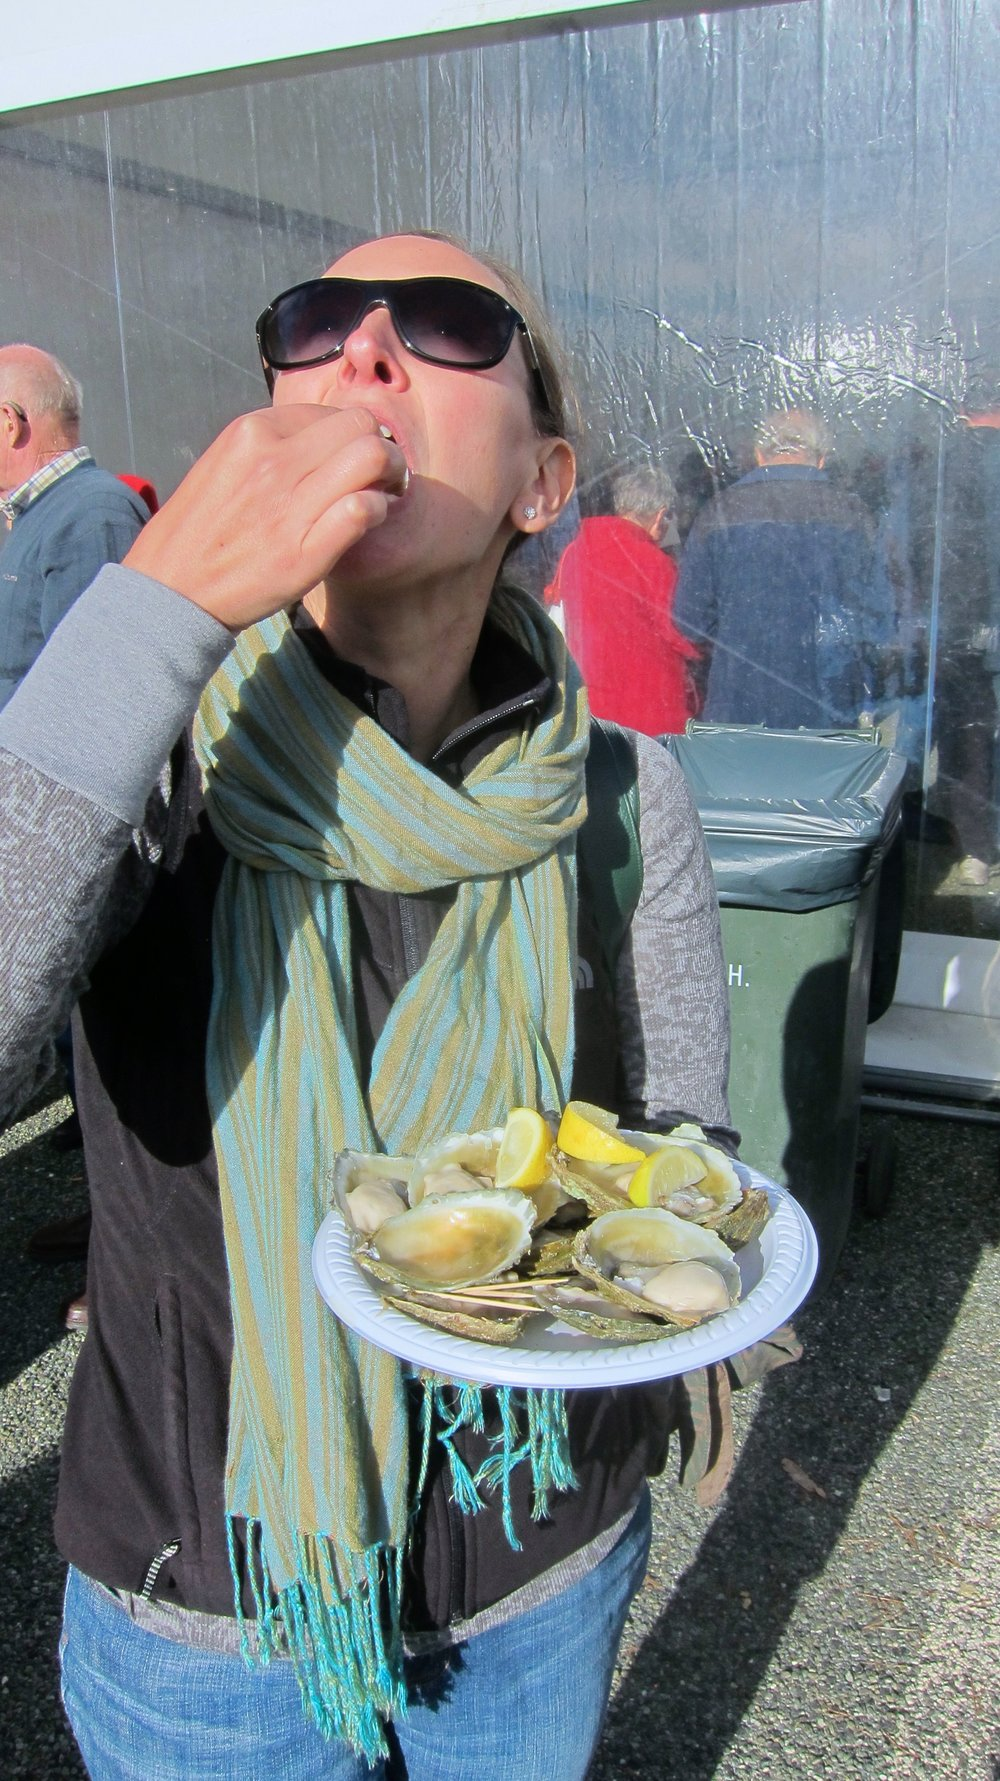 Also, lots of oyster eating.